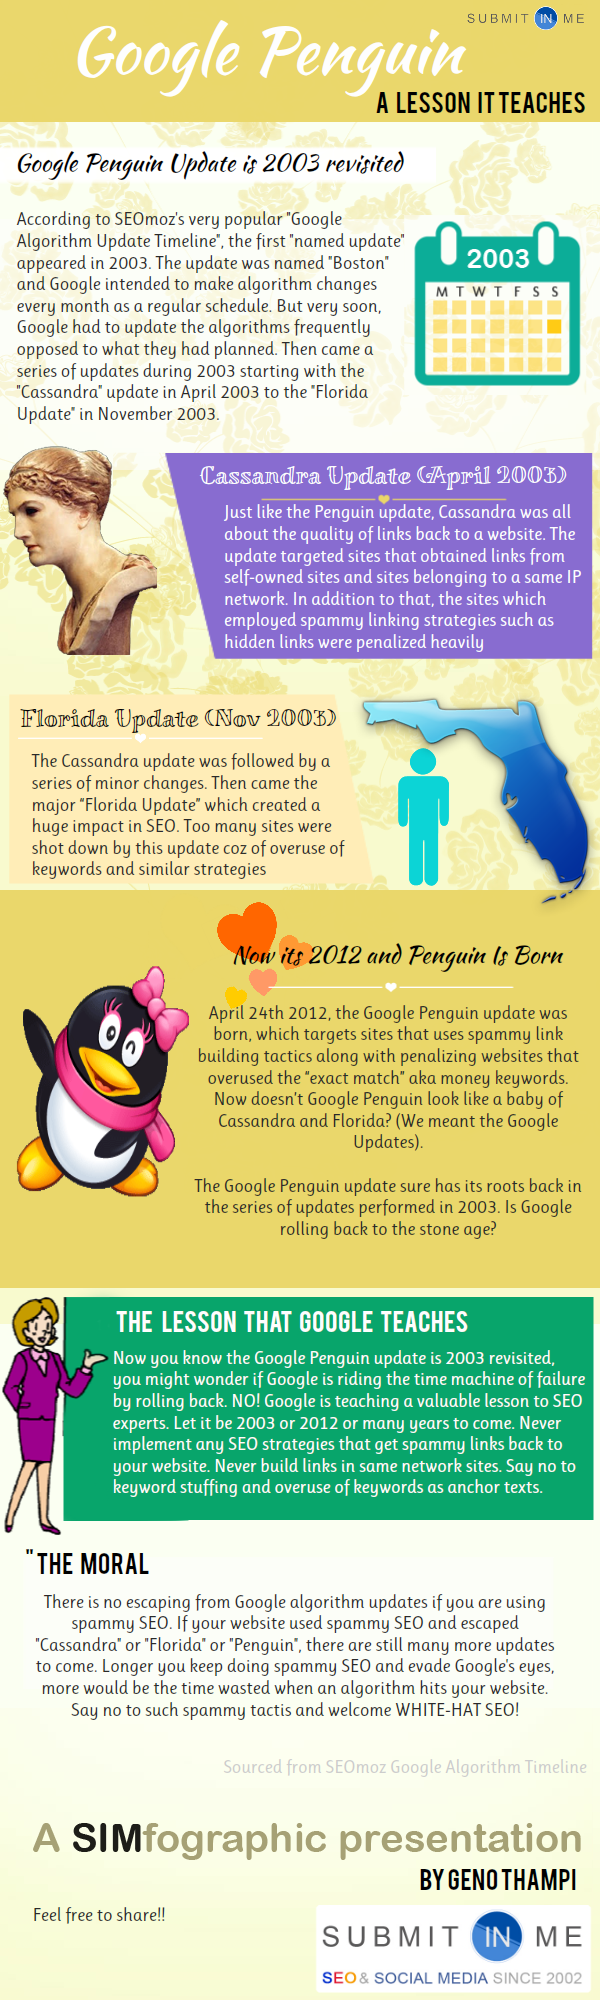 Google-Penguin: A-Lesson-It-Teaches-infographic